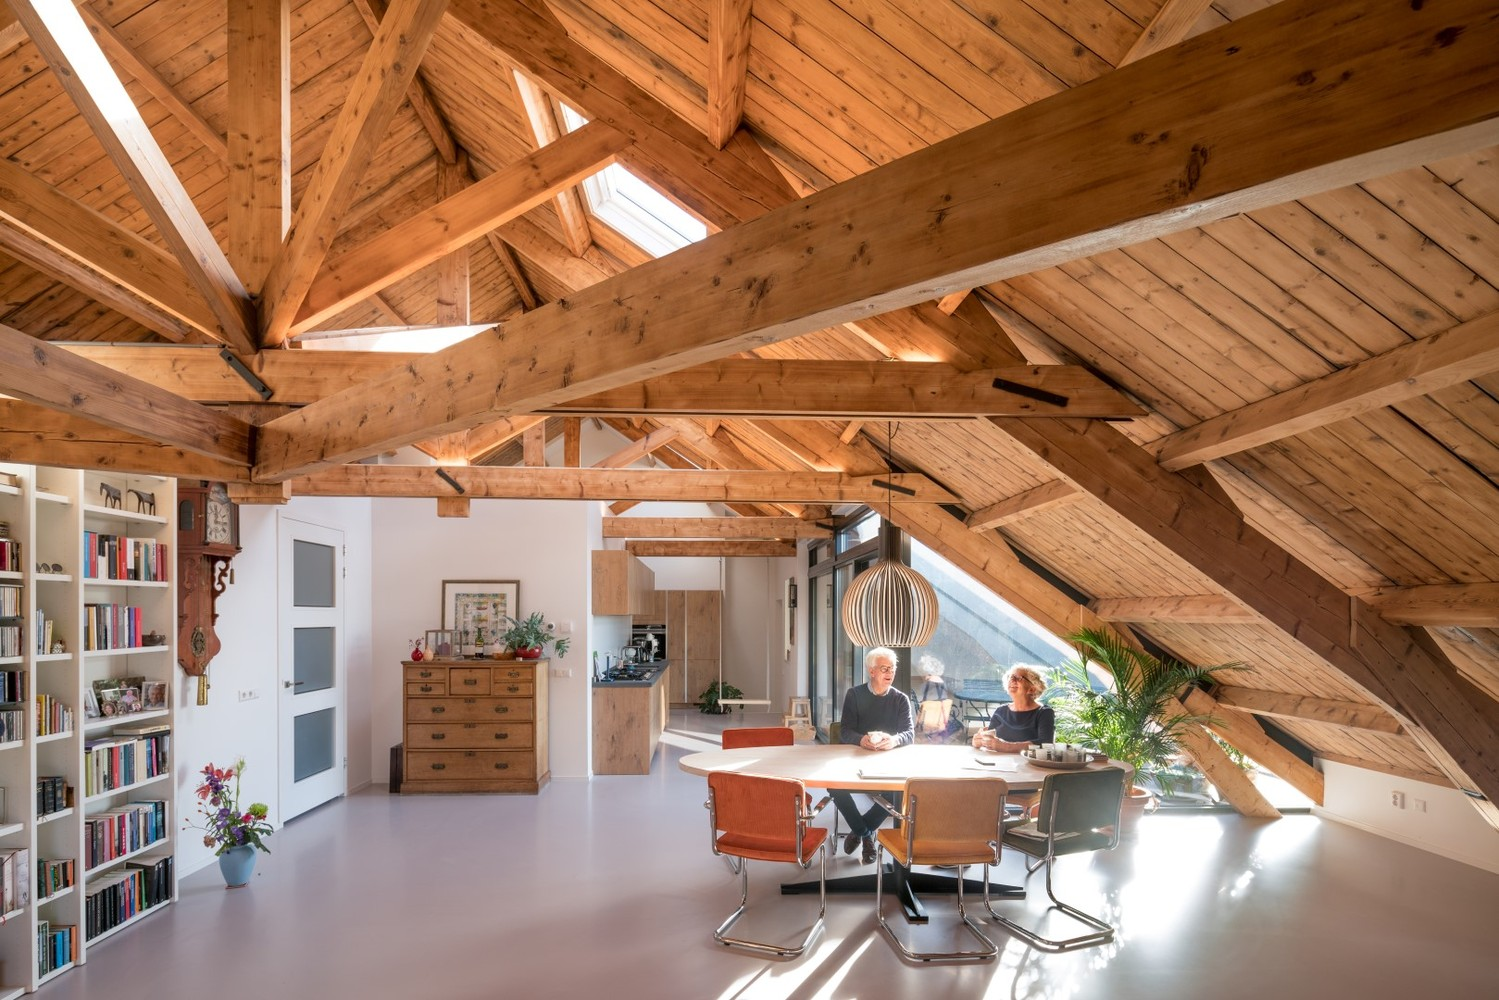 Gallery of Gouda Cheese Warehouse Loft Apartments / Mei ...